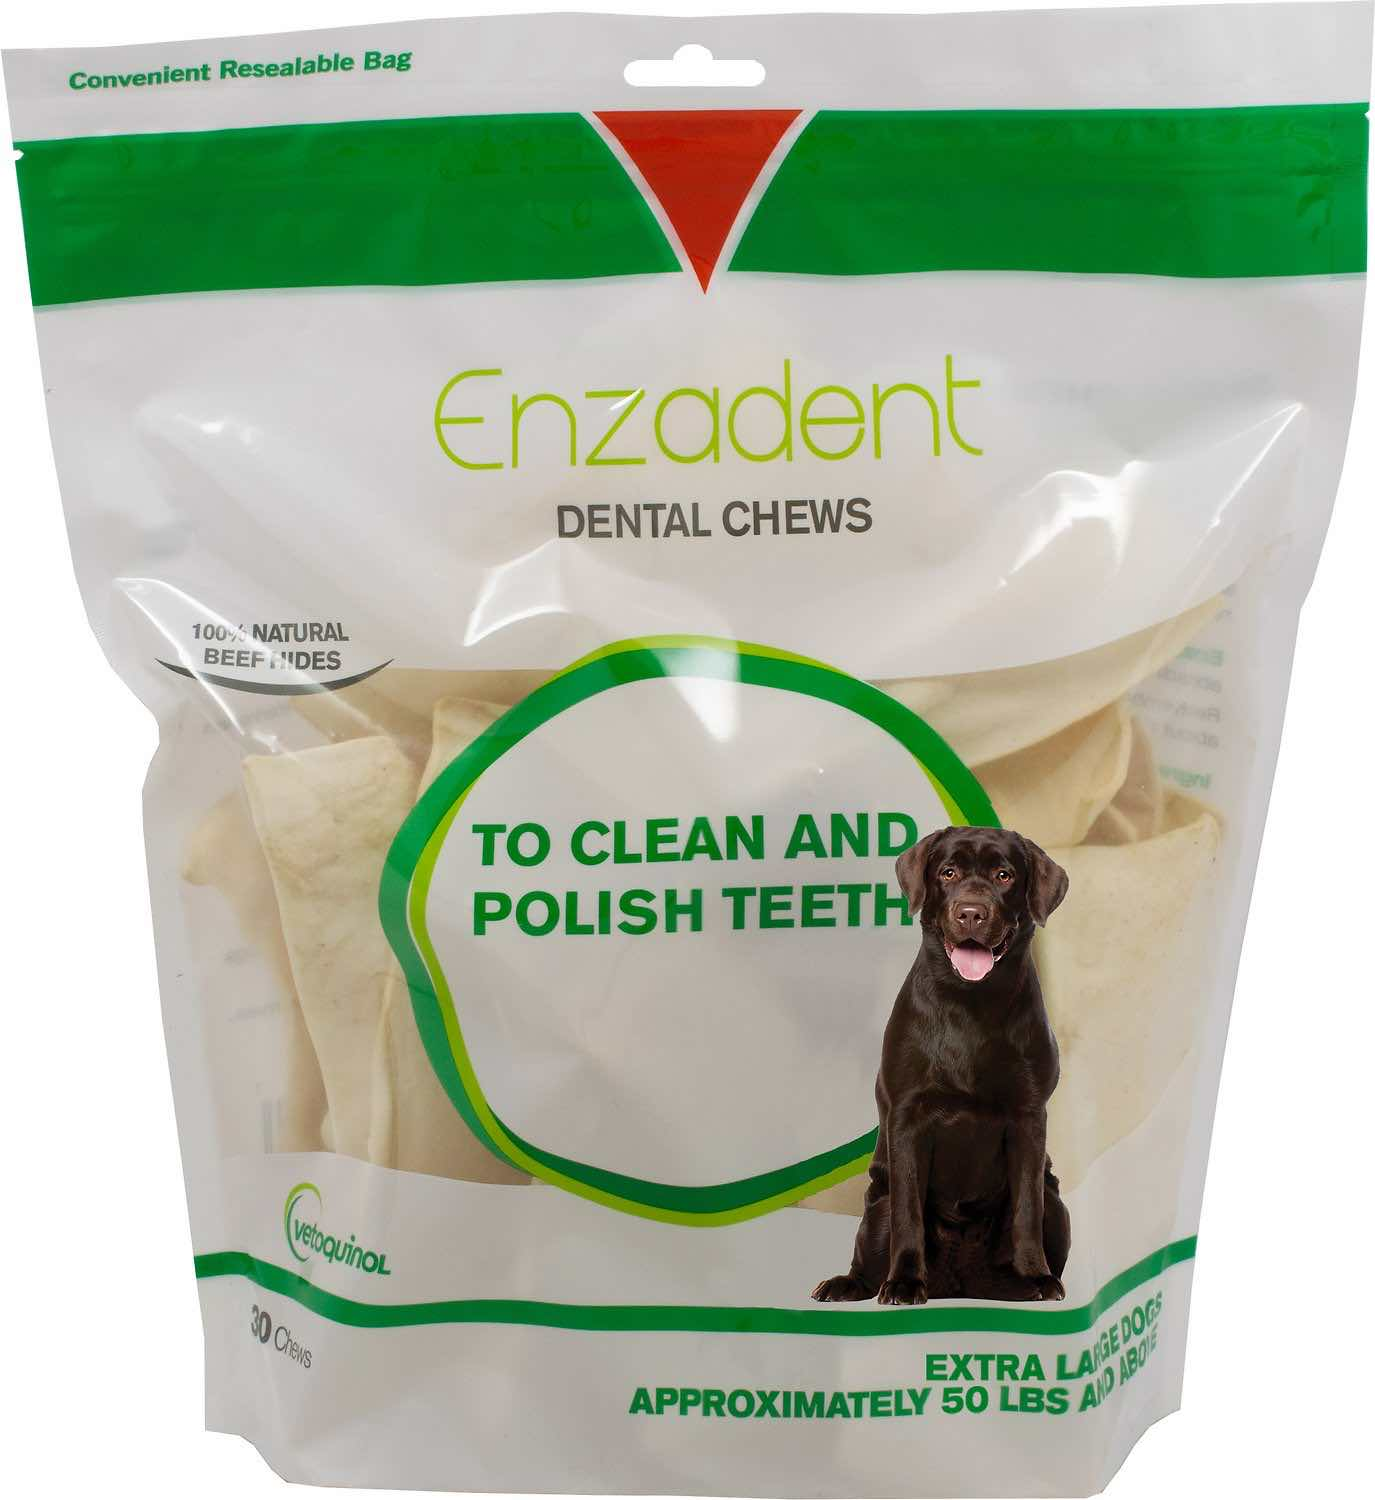 Enzadent Dental Chews 30 count for extra large dogs 50 lbs and above 1